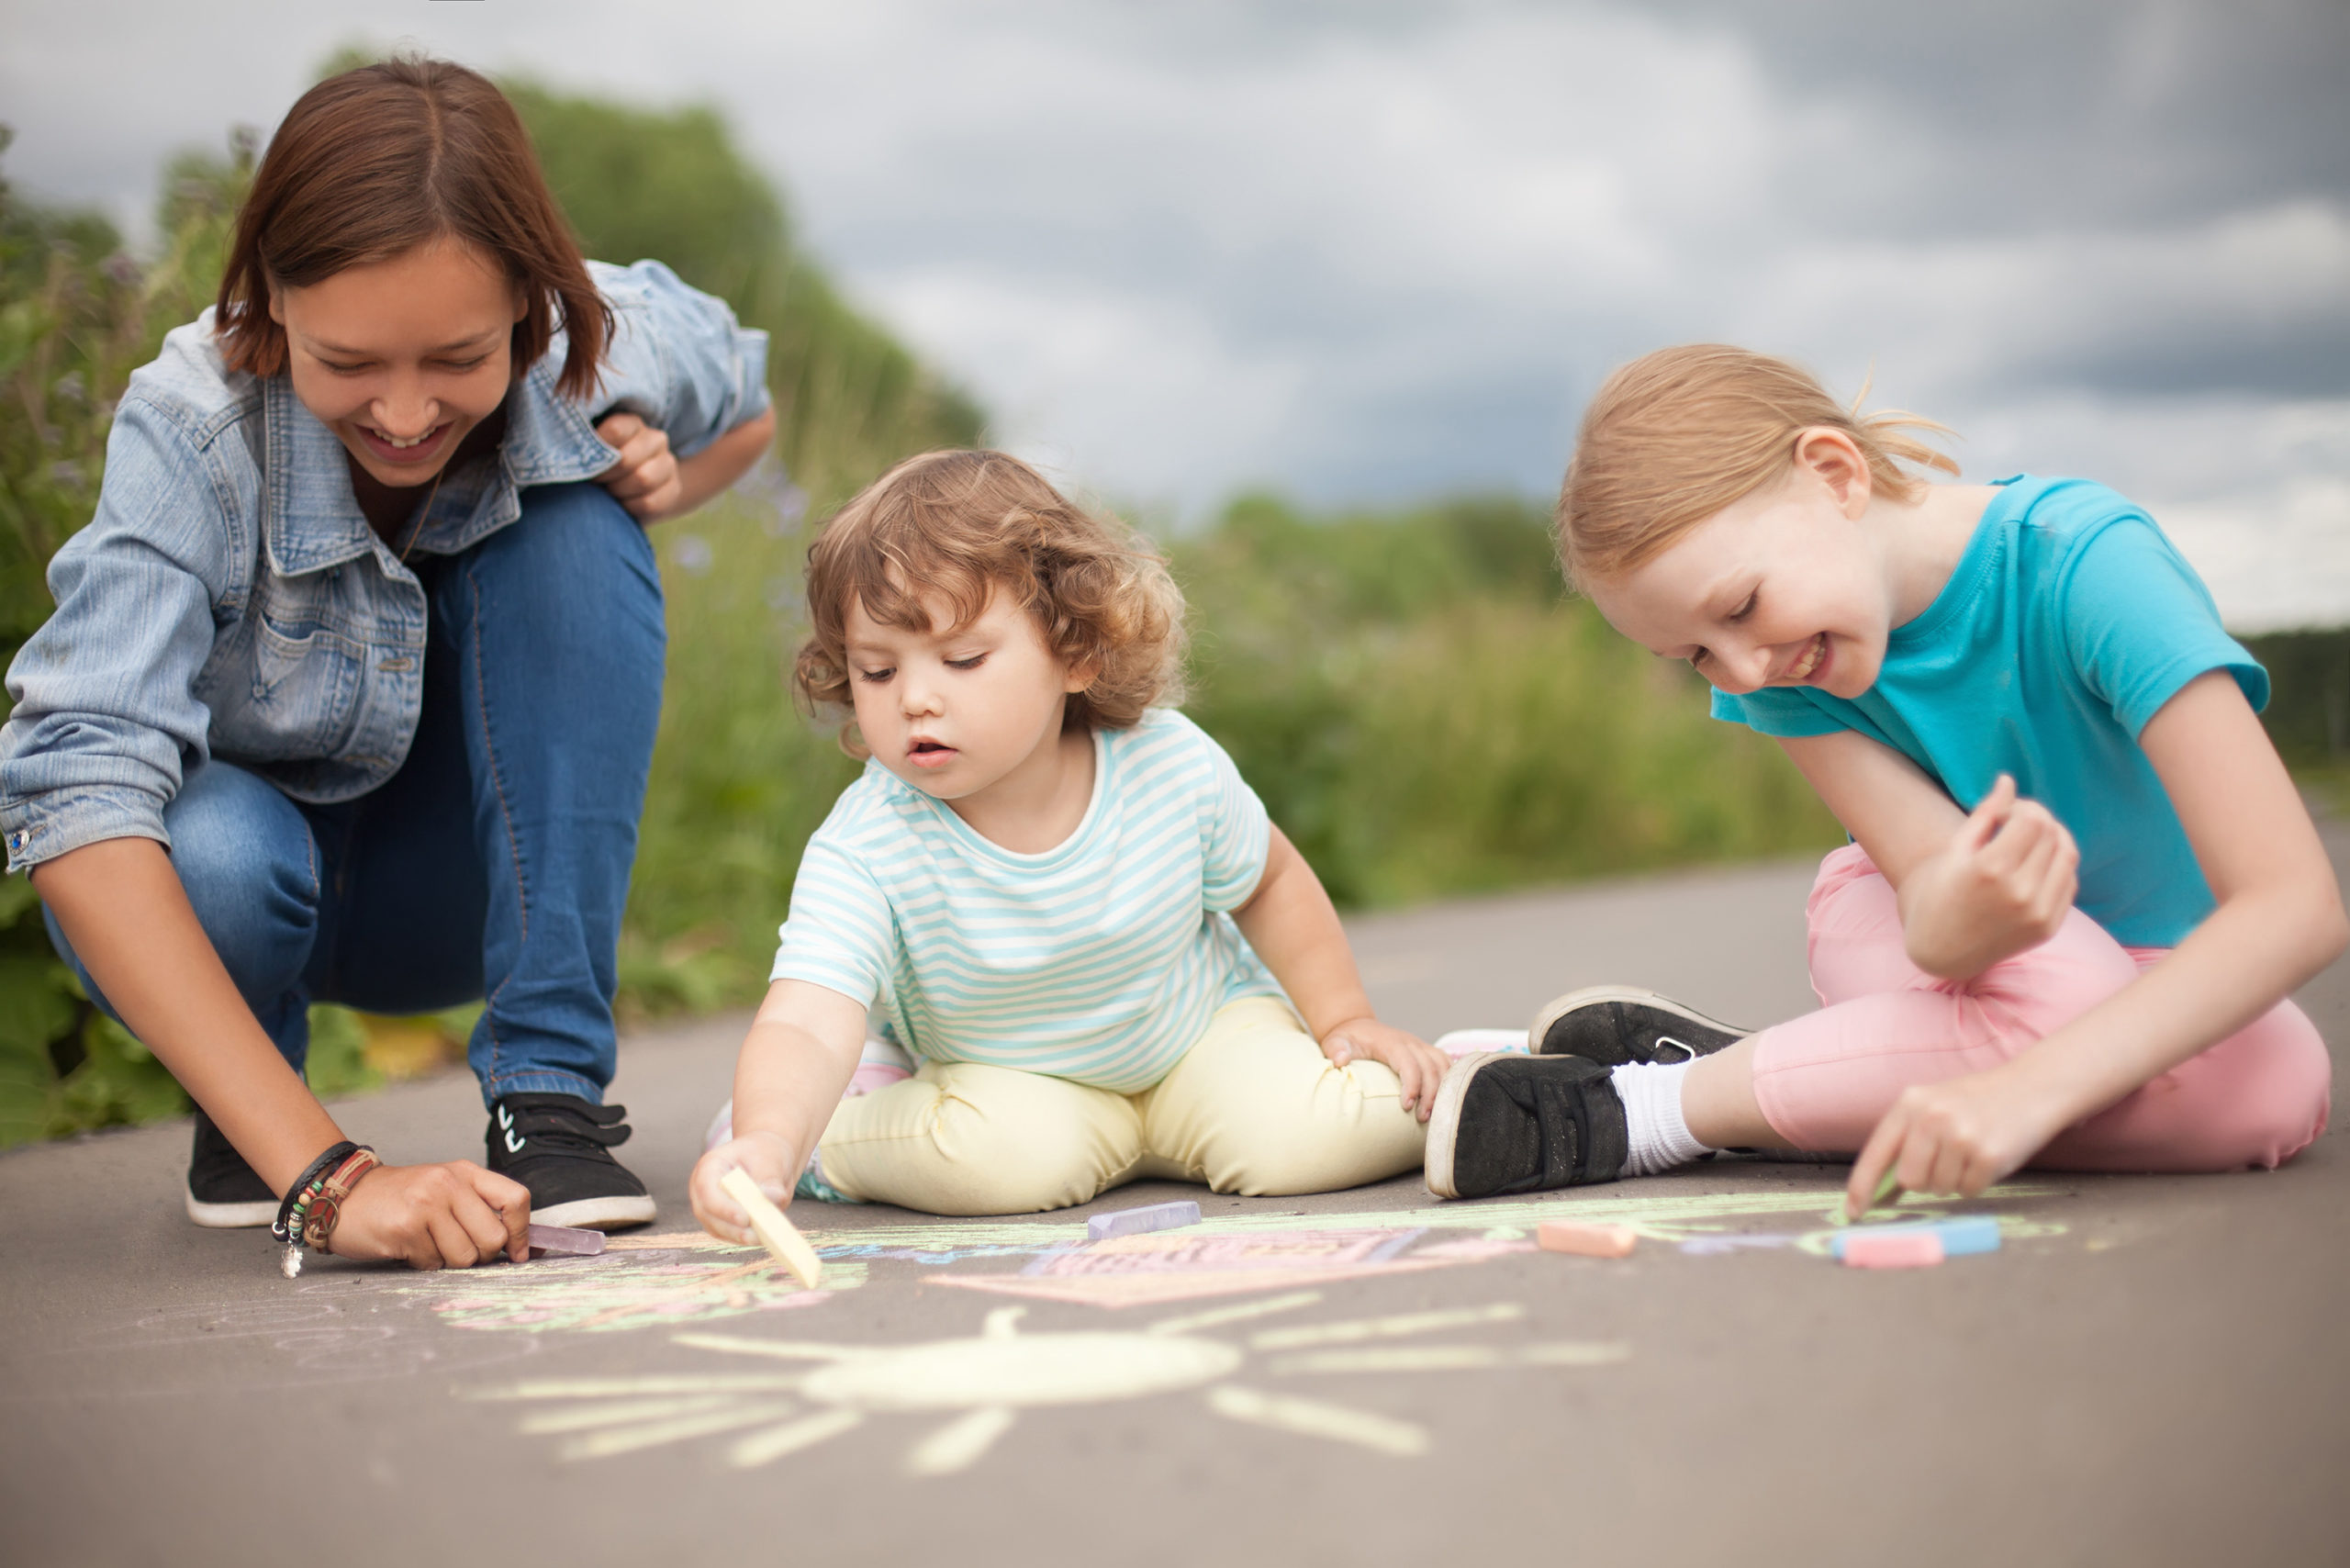 10 Tips on Hiring the Right Nanny for Your Family